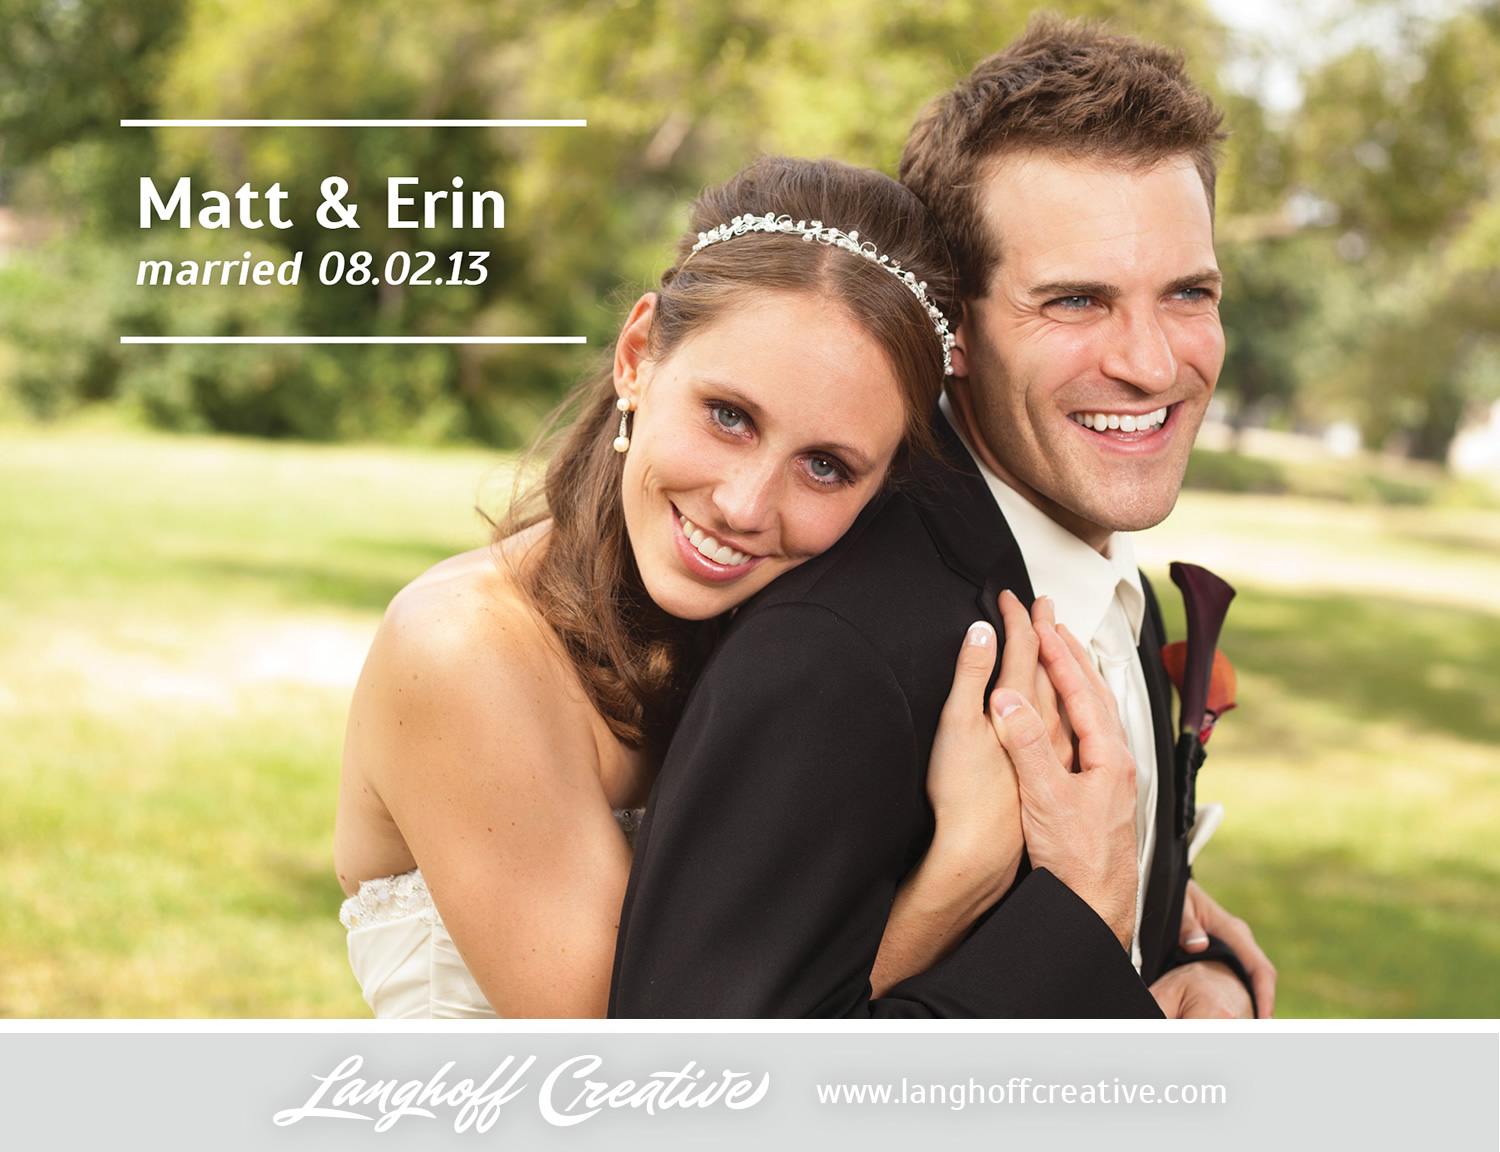 PlainfieldWedding-2013-LanghoffCreative-MattErin-1-photo.jpg